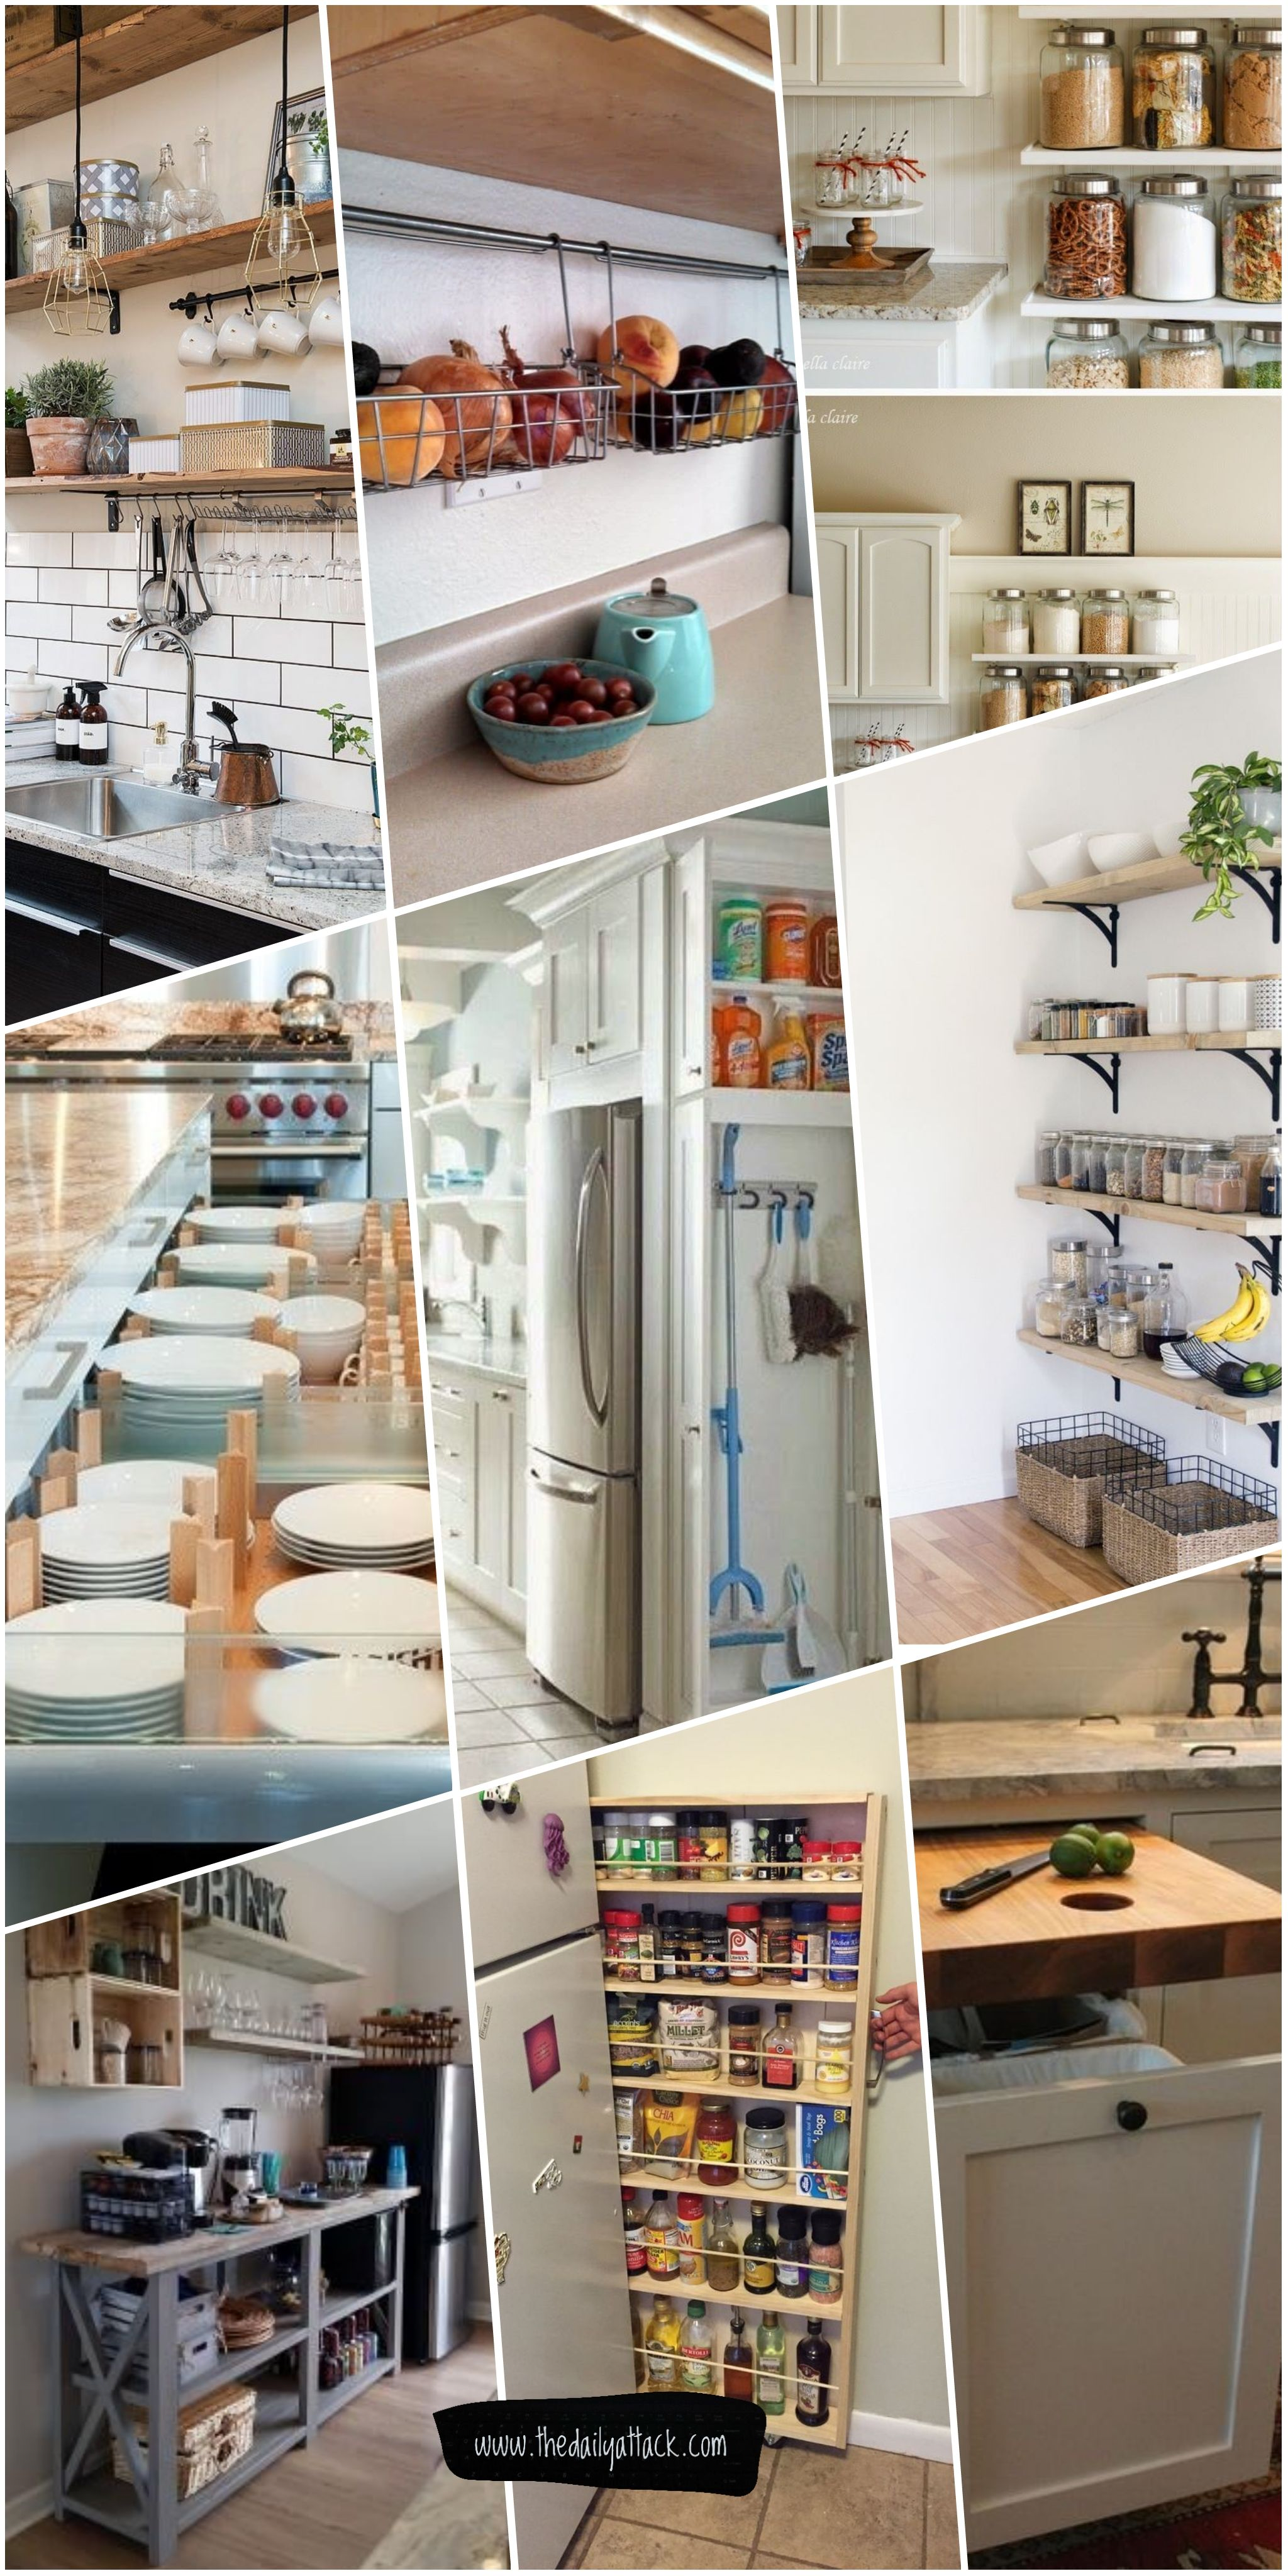 Hanging Kitchen Storage Ideas Racks Design Images Wall Containers Pantry